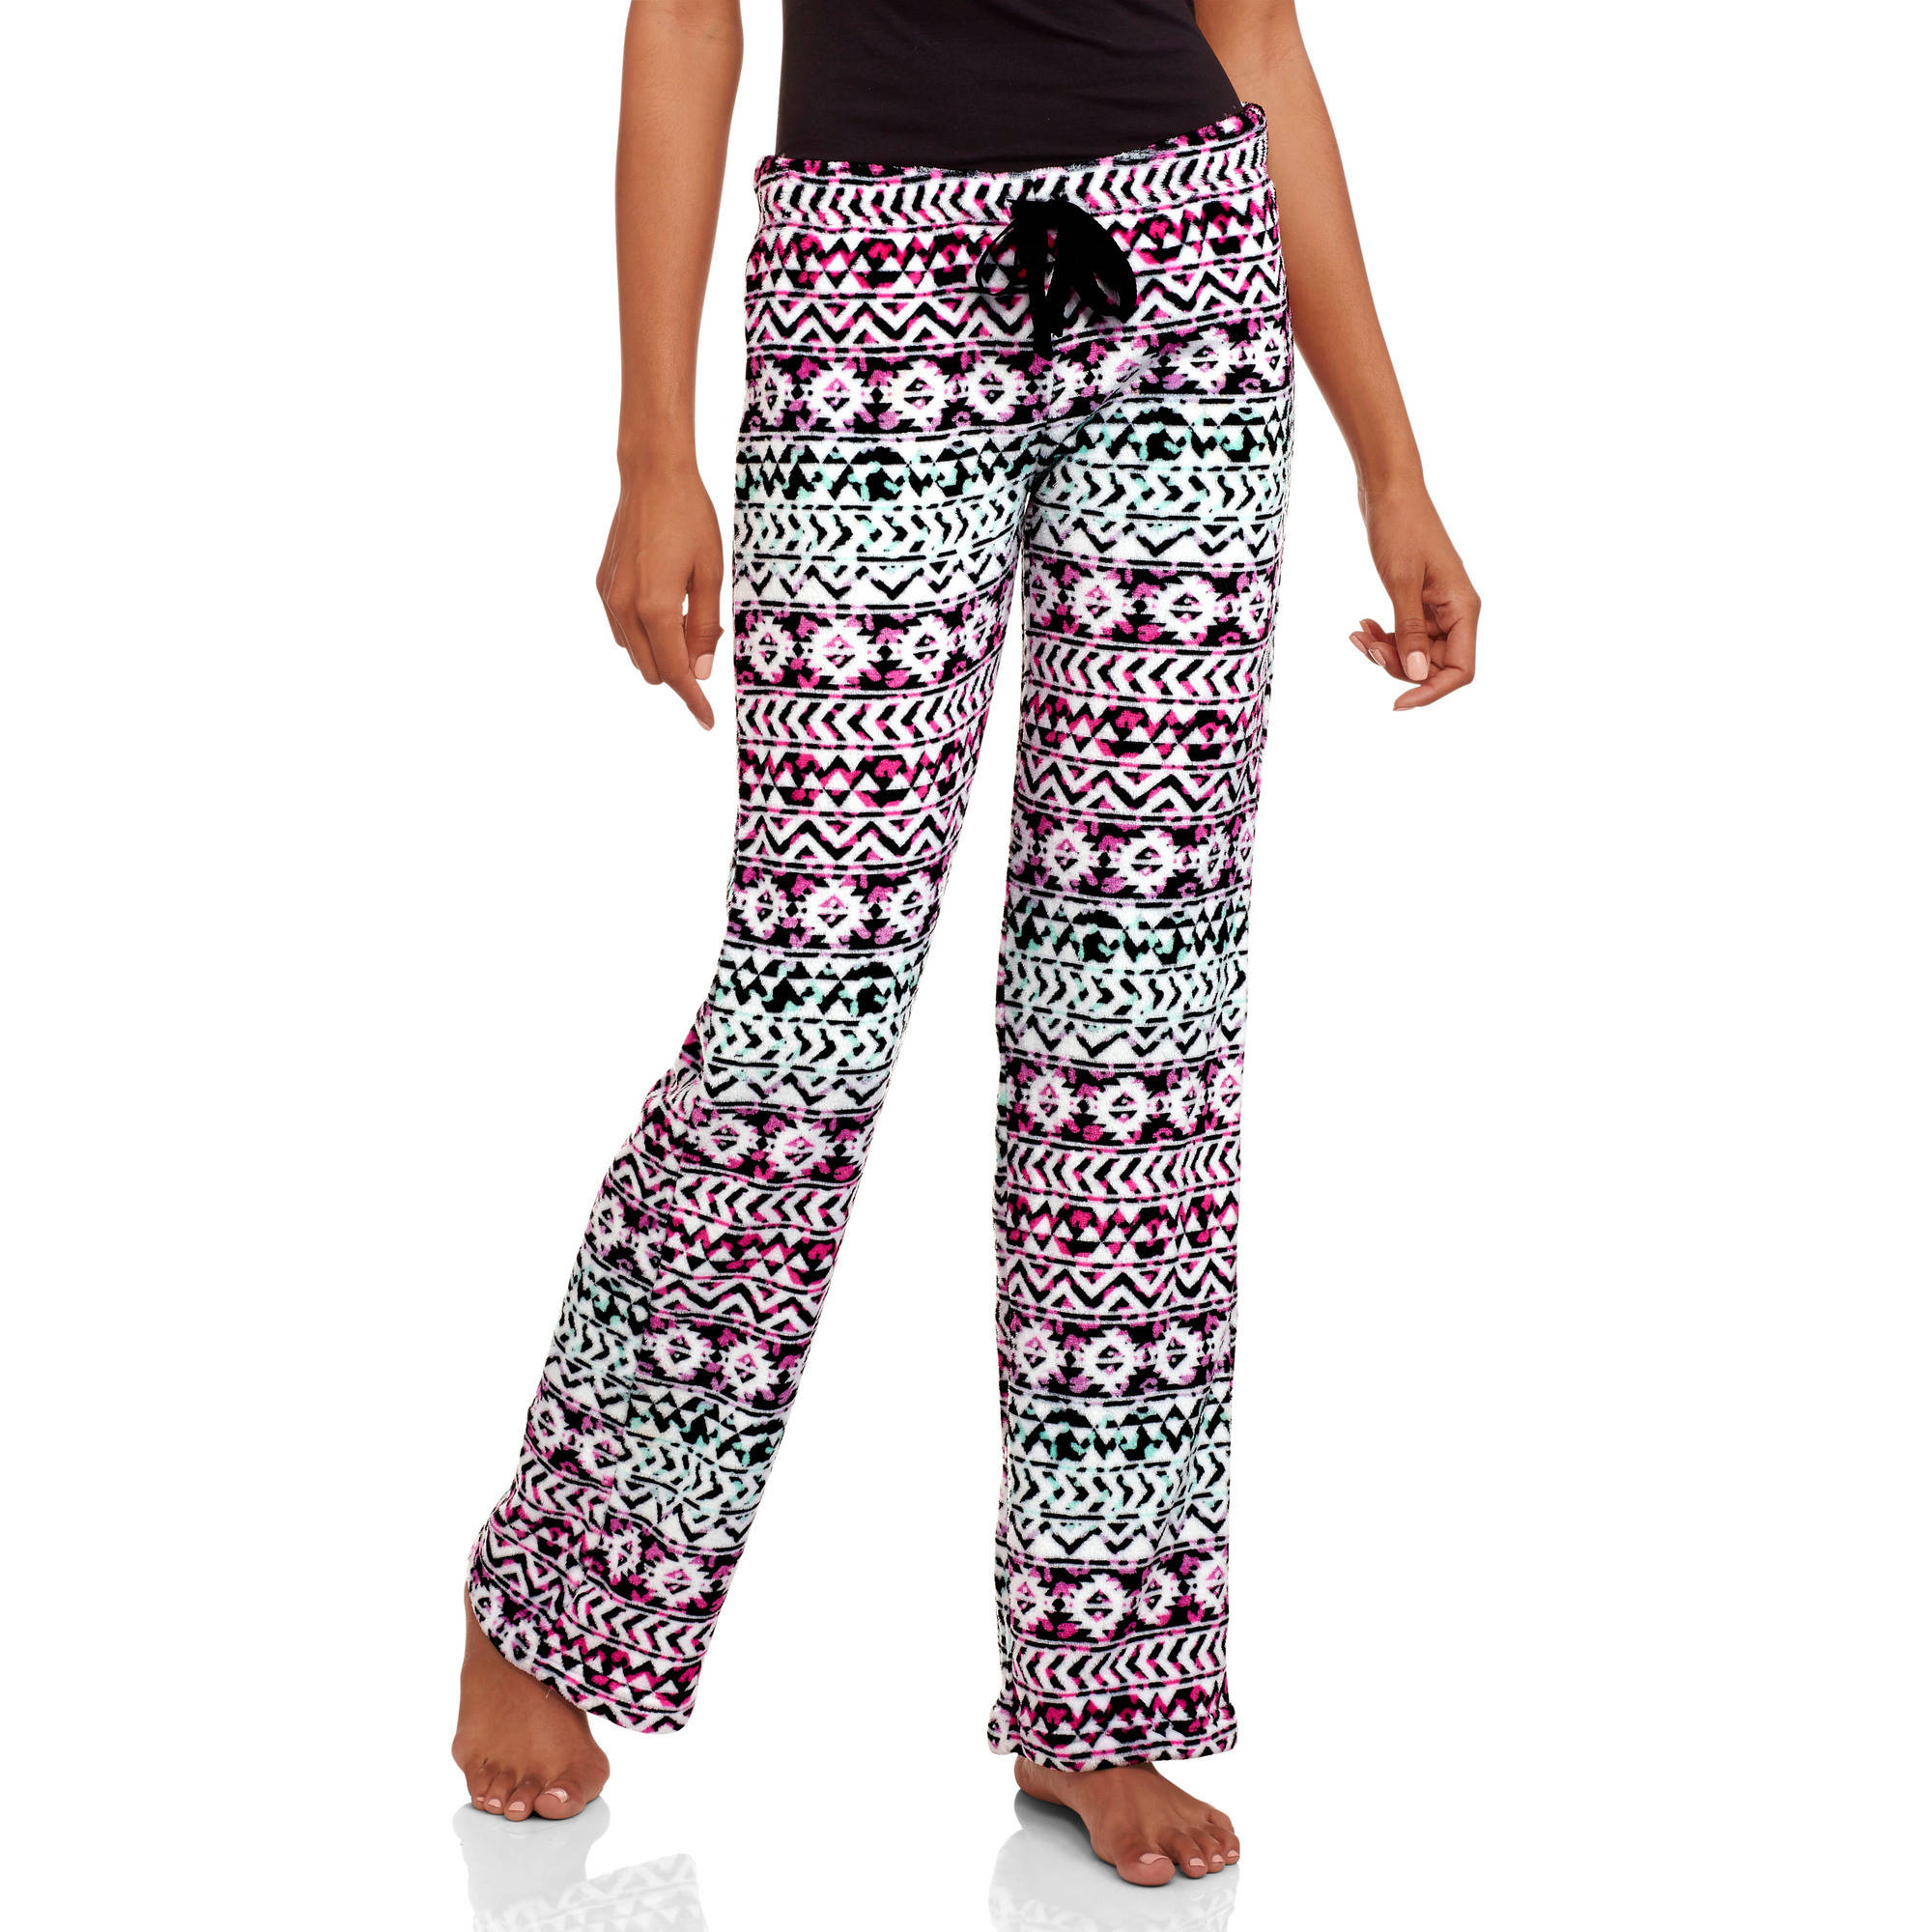 Body Candy Juniors' Luxe Plush Sleep Pants